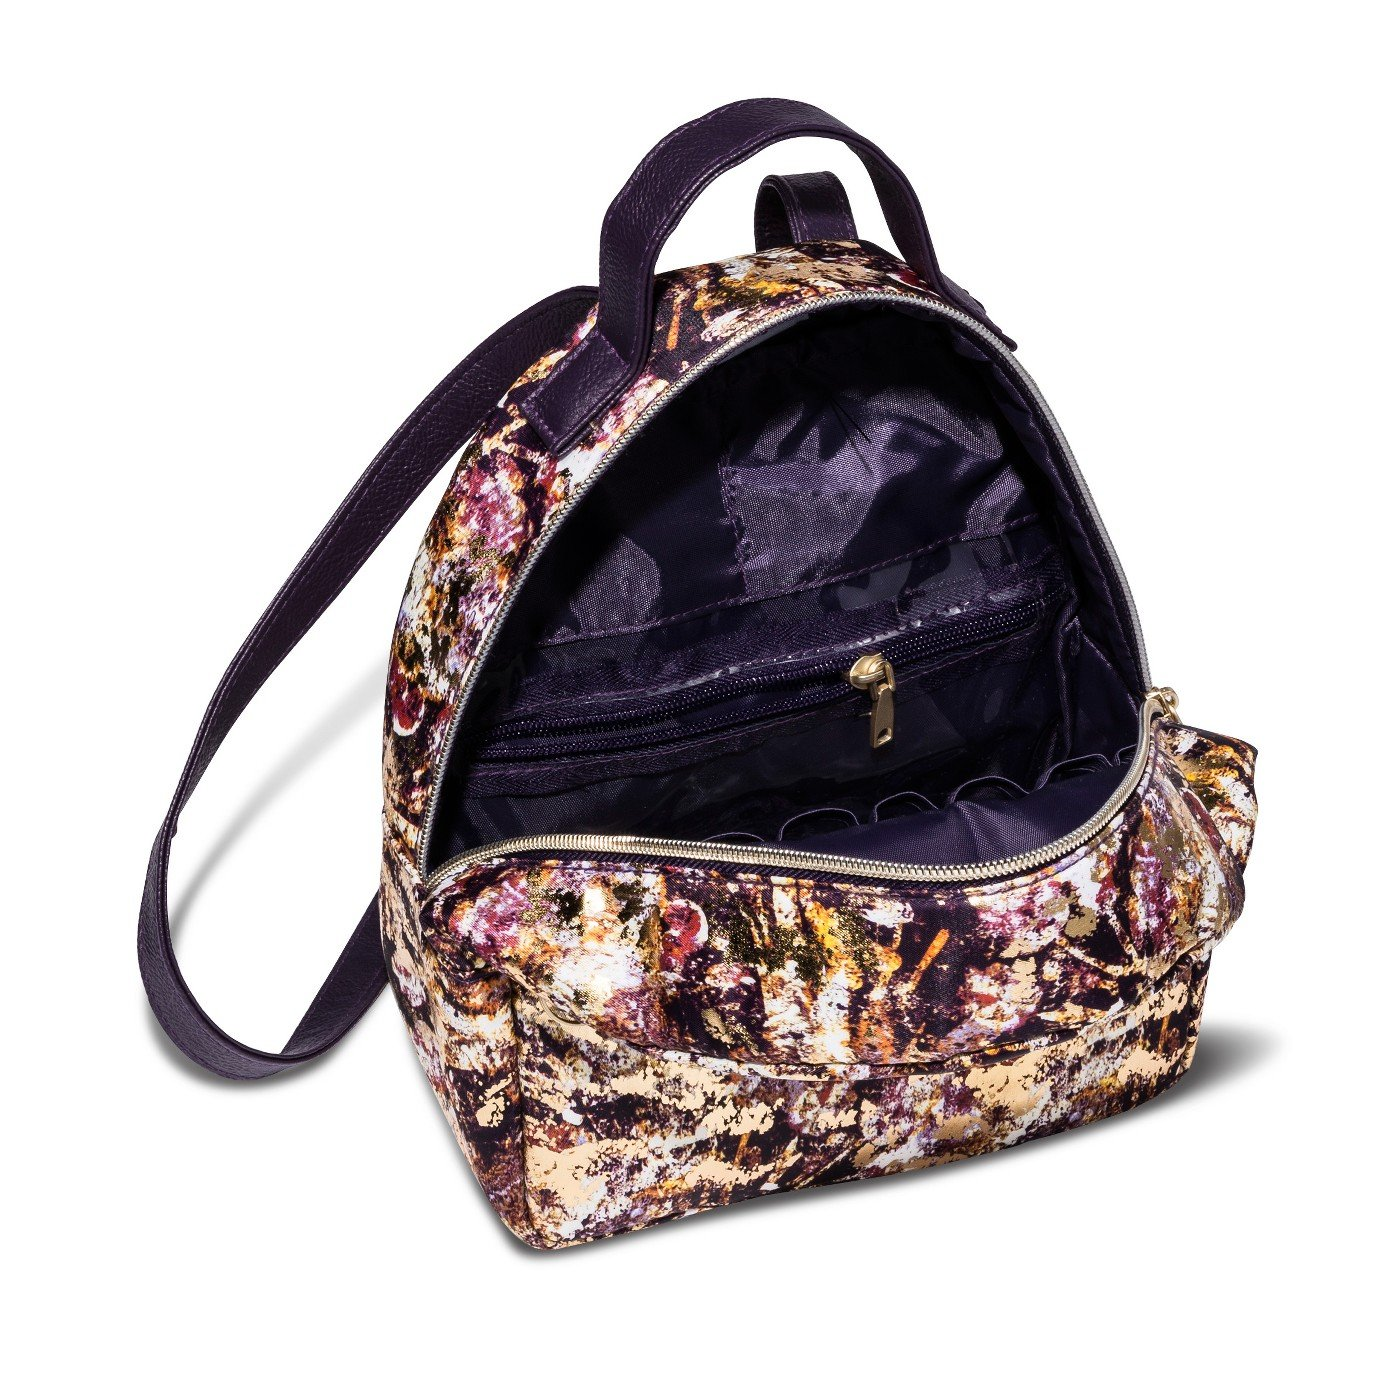 Sonia Kashuk153; Cosmetic Bag Cosmetic Backpack Distress Floral with Foil MULTI-COLORED